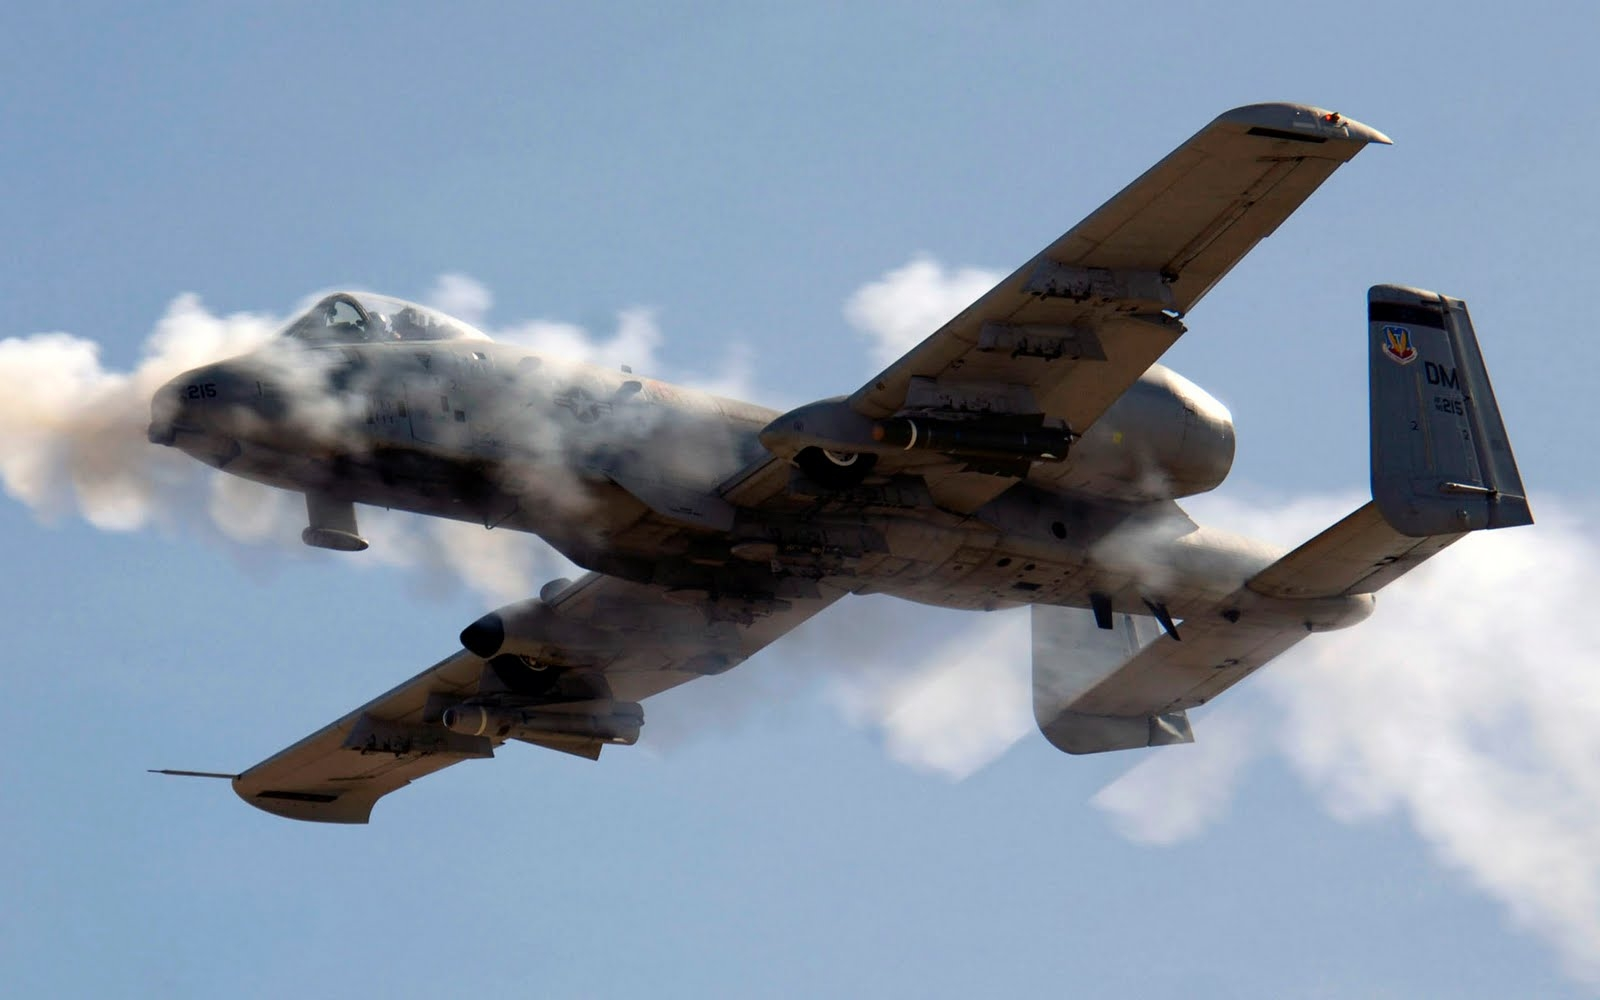 http://3.bp.blogspot.com/-hjc3pSd9S2A/Tymv6rNifBI/AAAAAAAADQY/iZaixr_GwkA/s1600/Fighter+Aircraft+Wallpapers+HD006.jpg